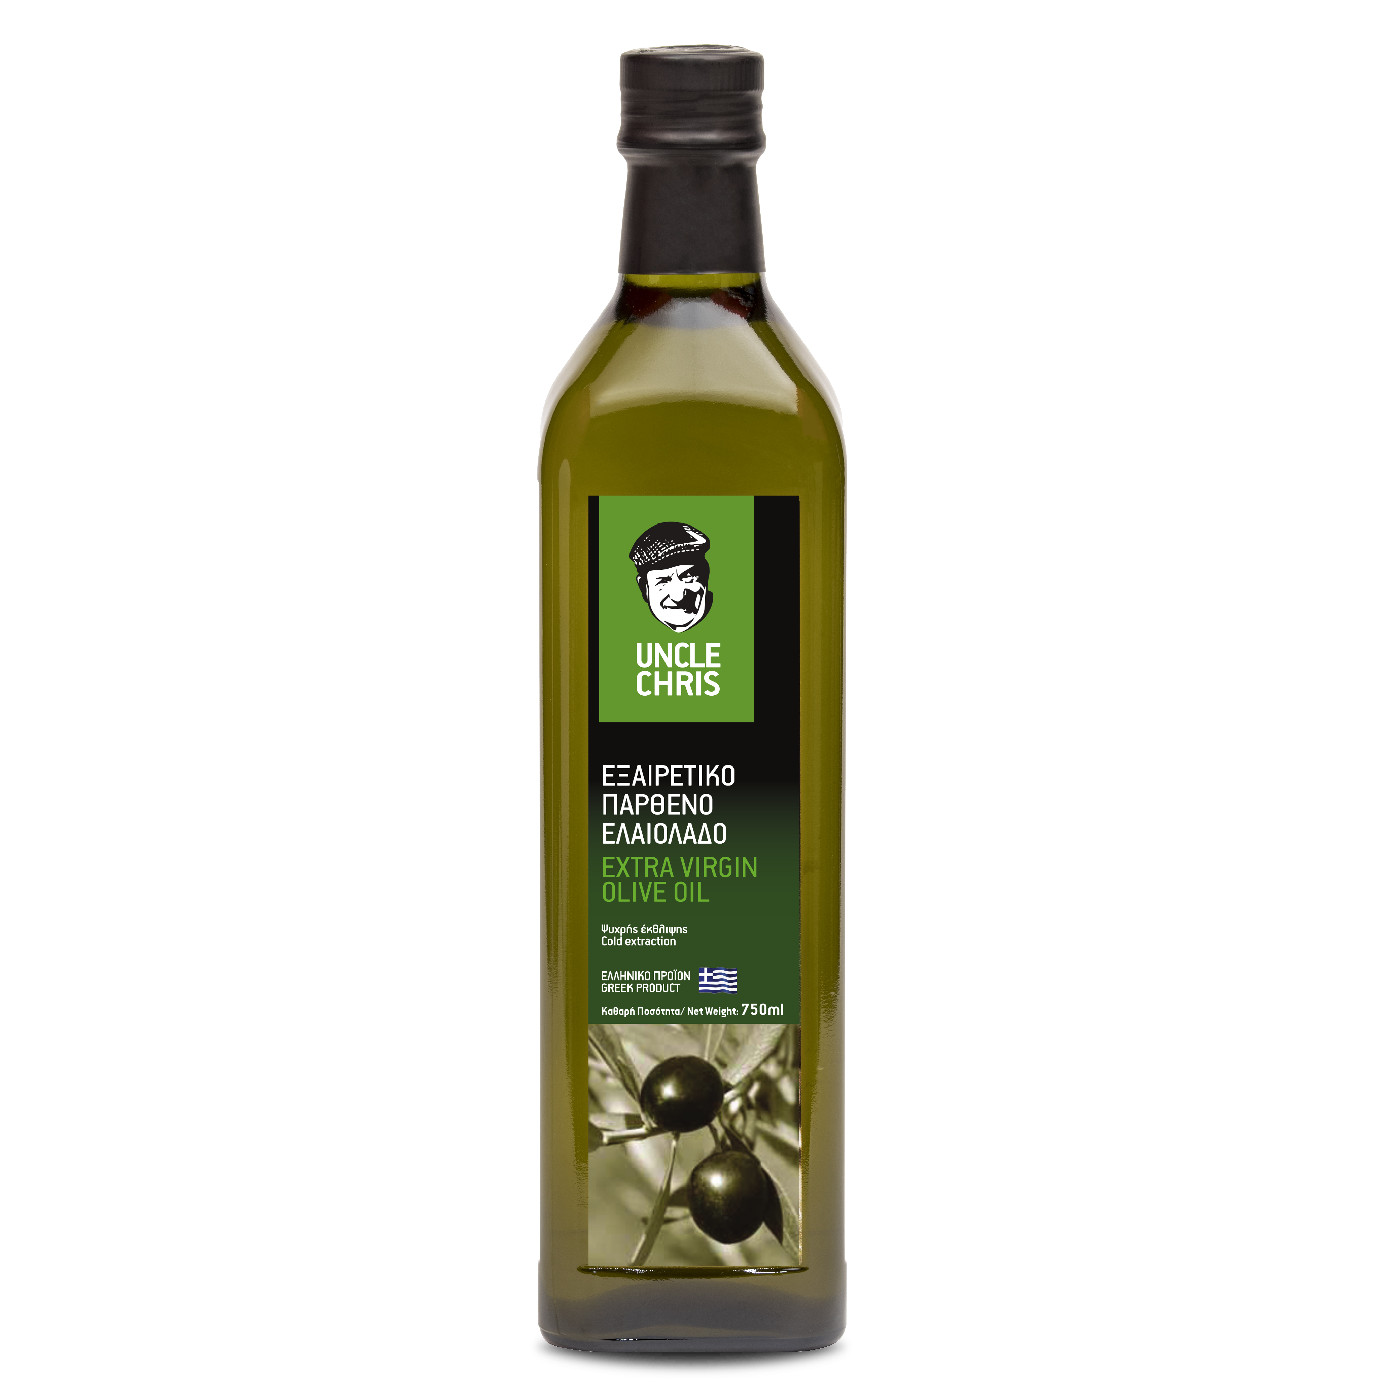 Uncle Chris Extra virgin olive oil marasca 750ml